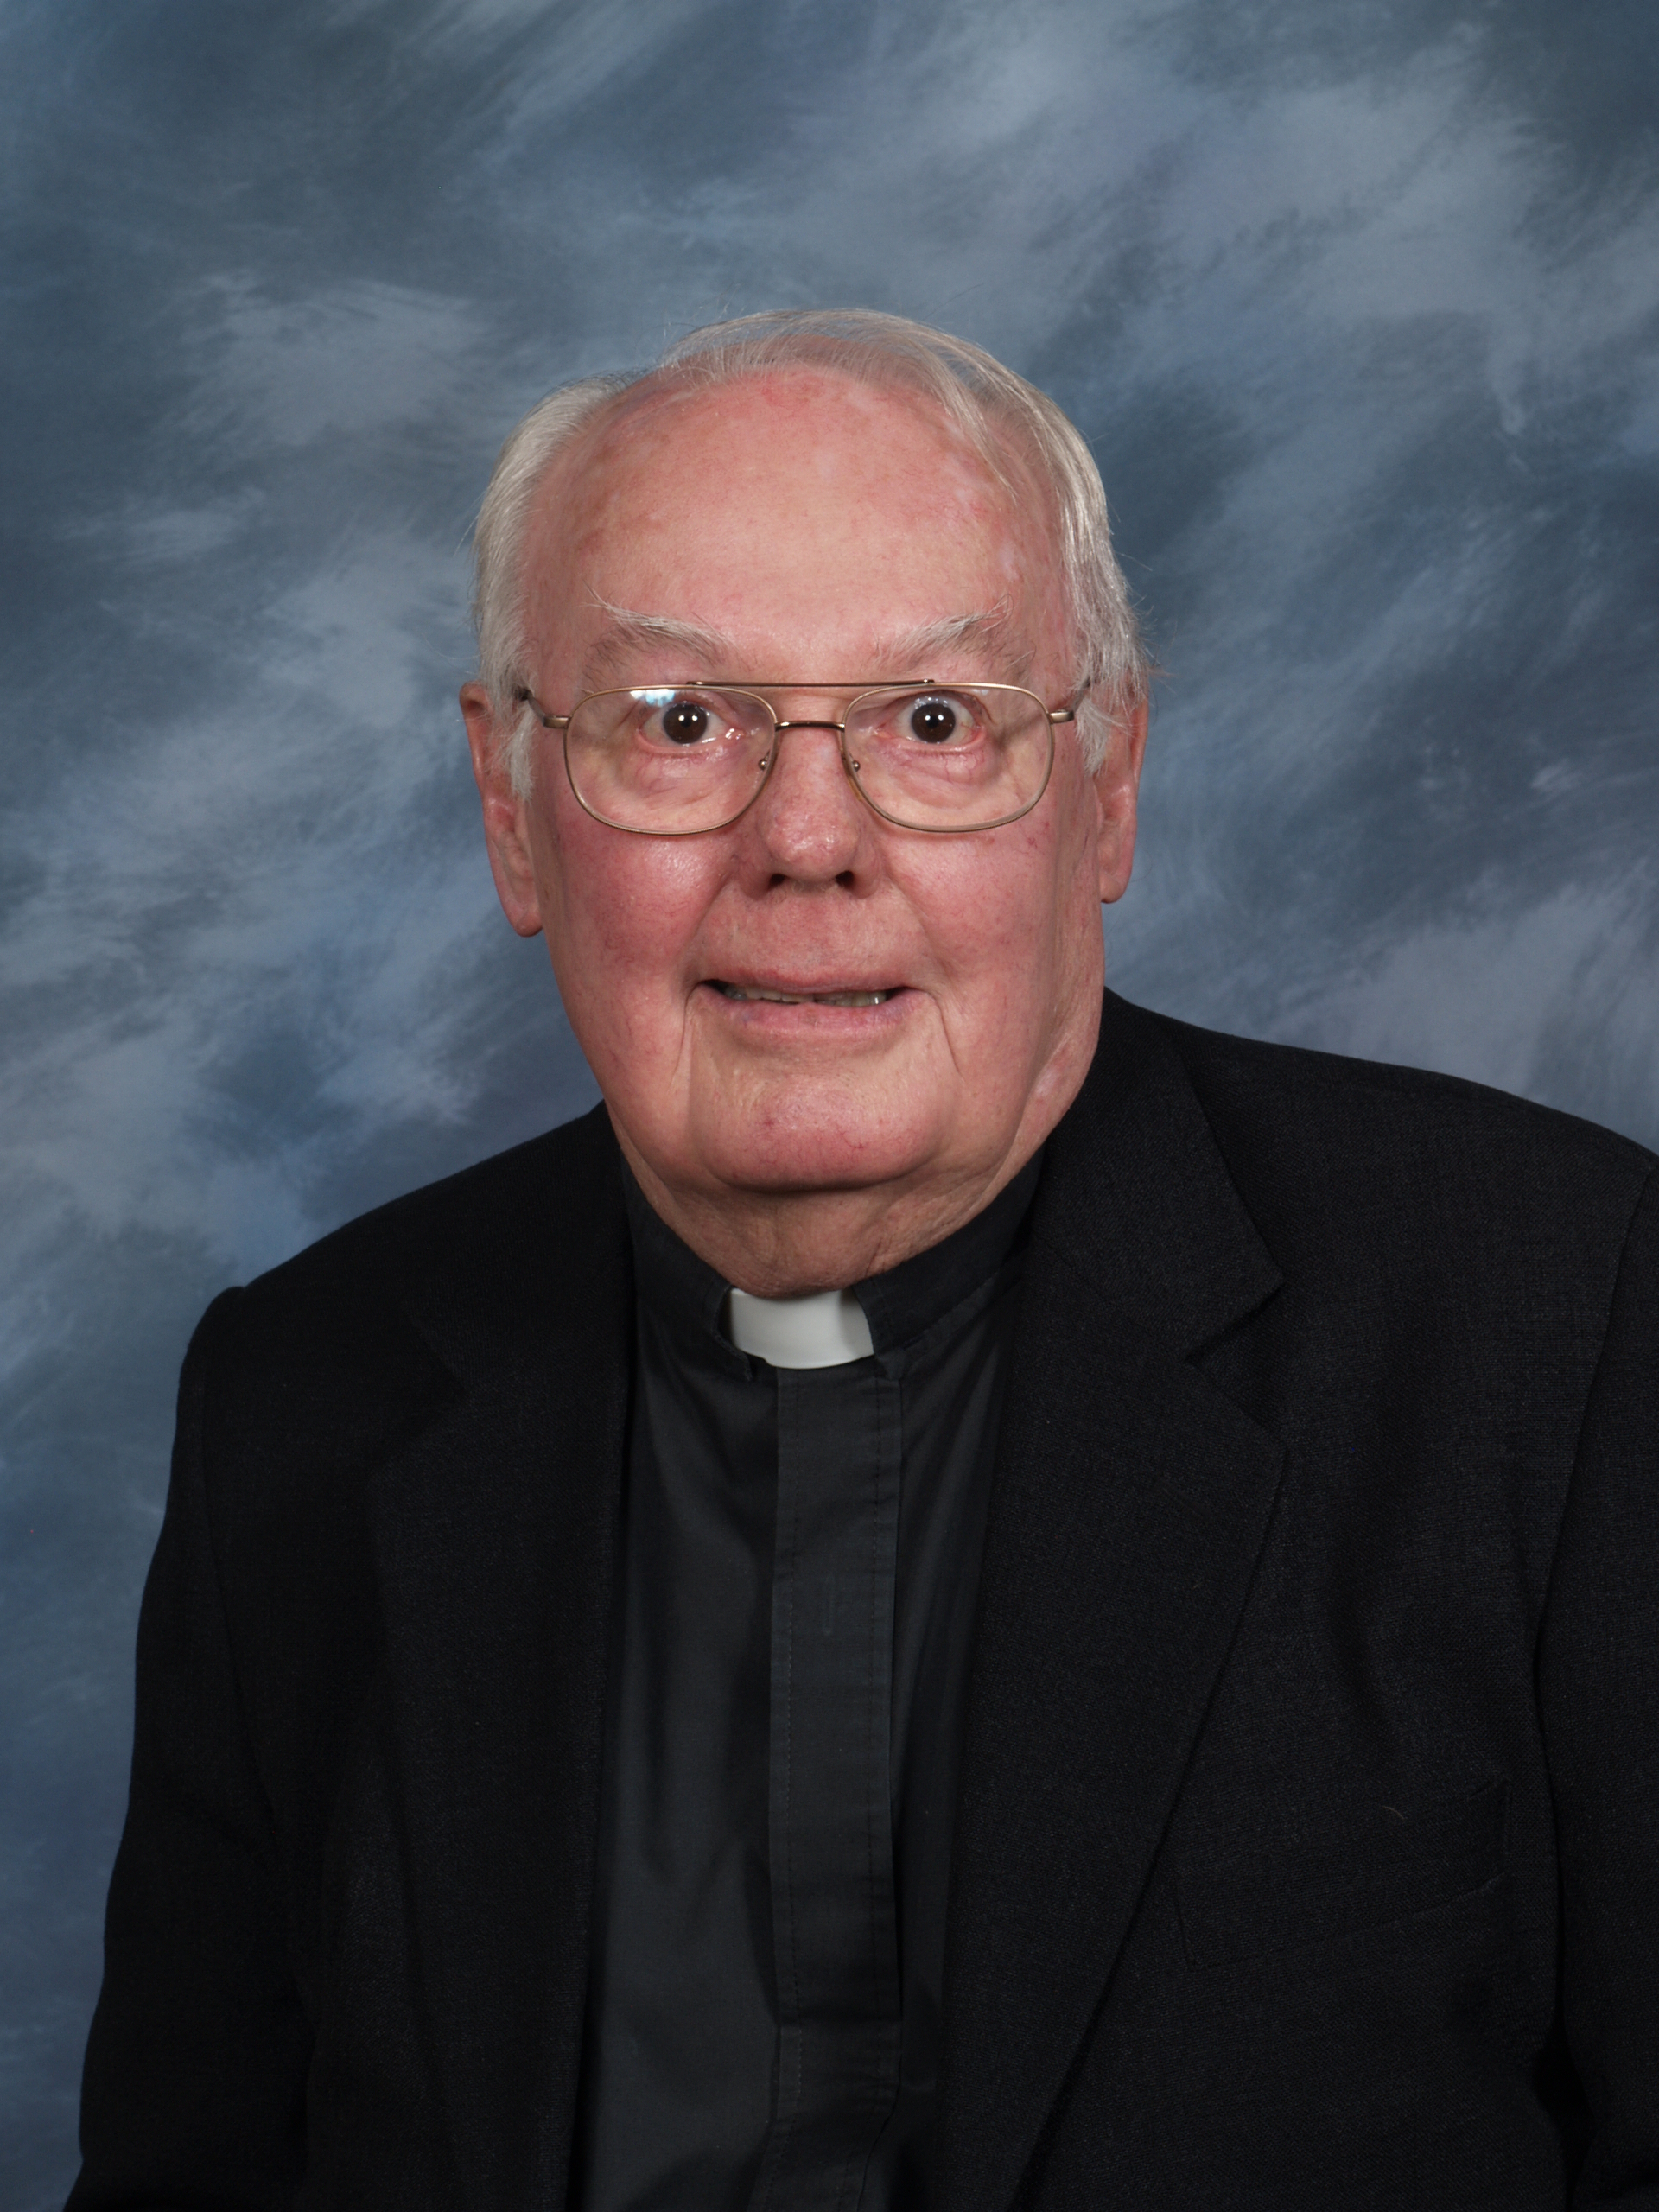 Fr. Bob French - 53 Years Ordained